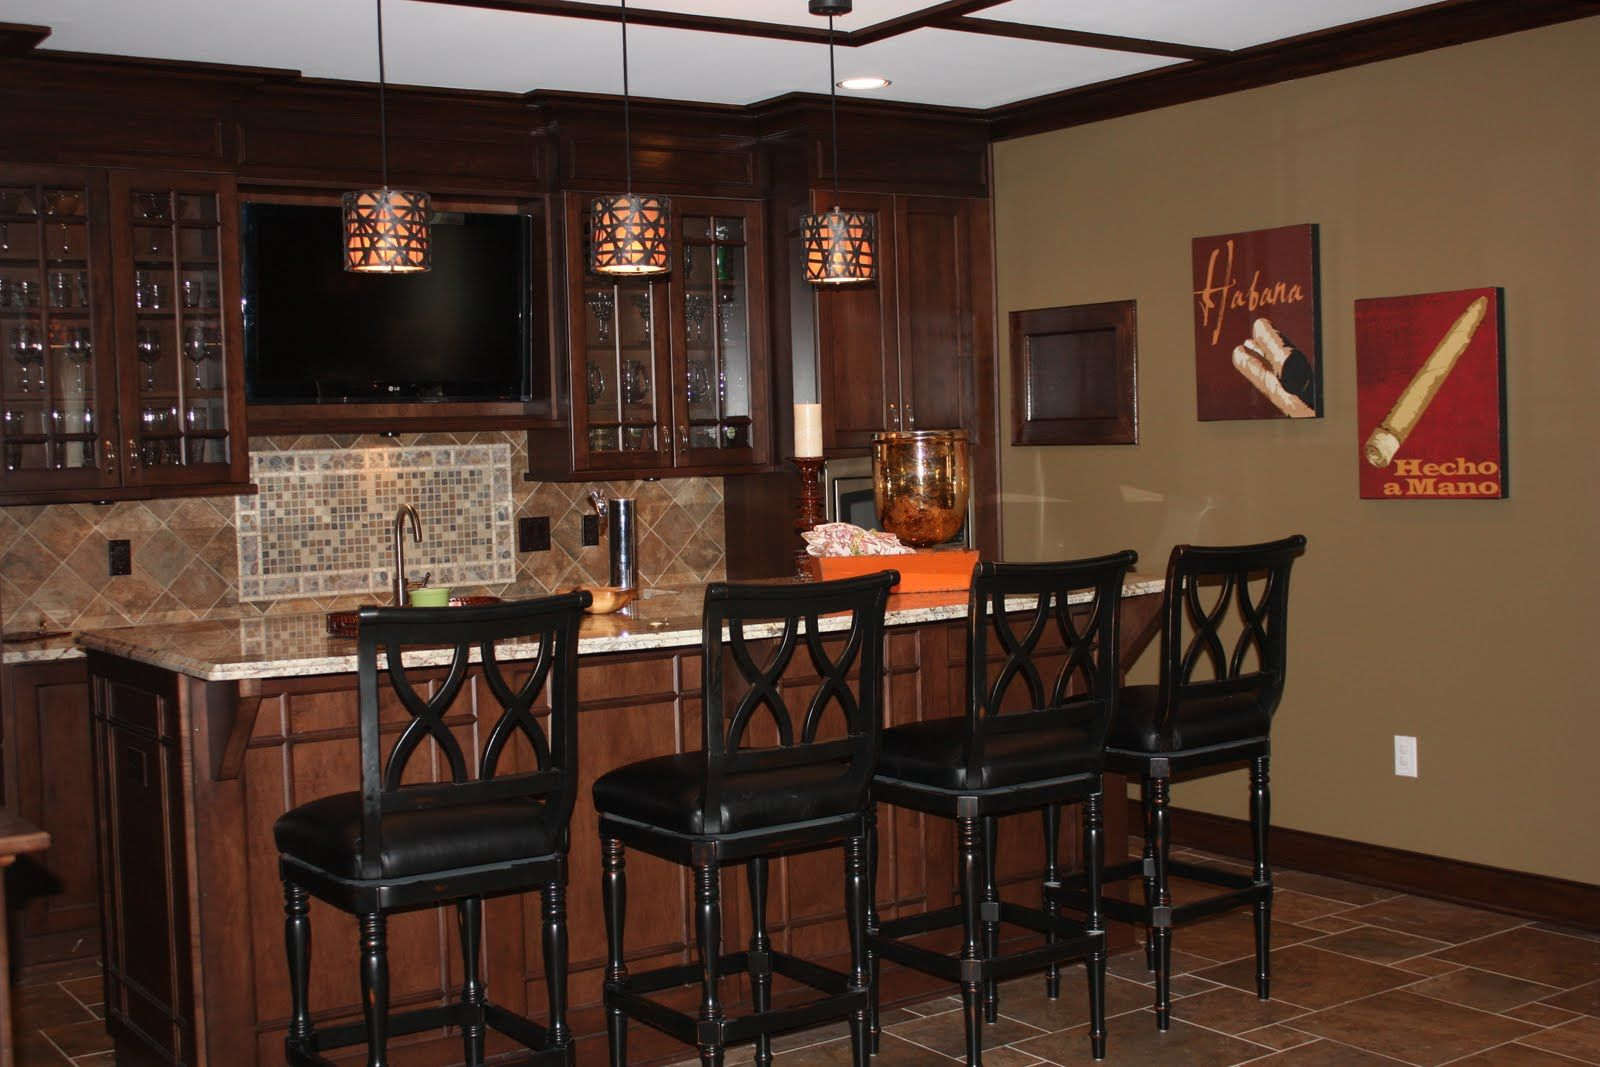 Basement Bar Design Ideas image of basement bar layout and design Best Home Bar Pictures Basement Remodelingbasement Ideasremodeling